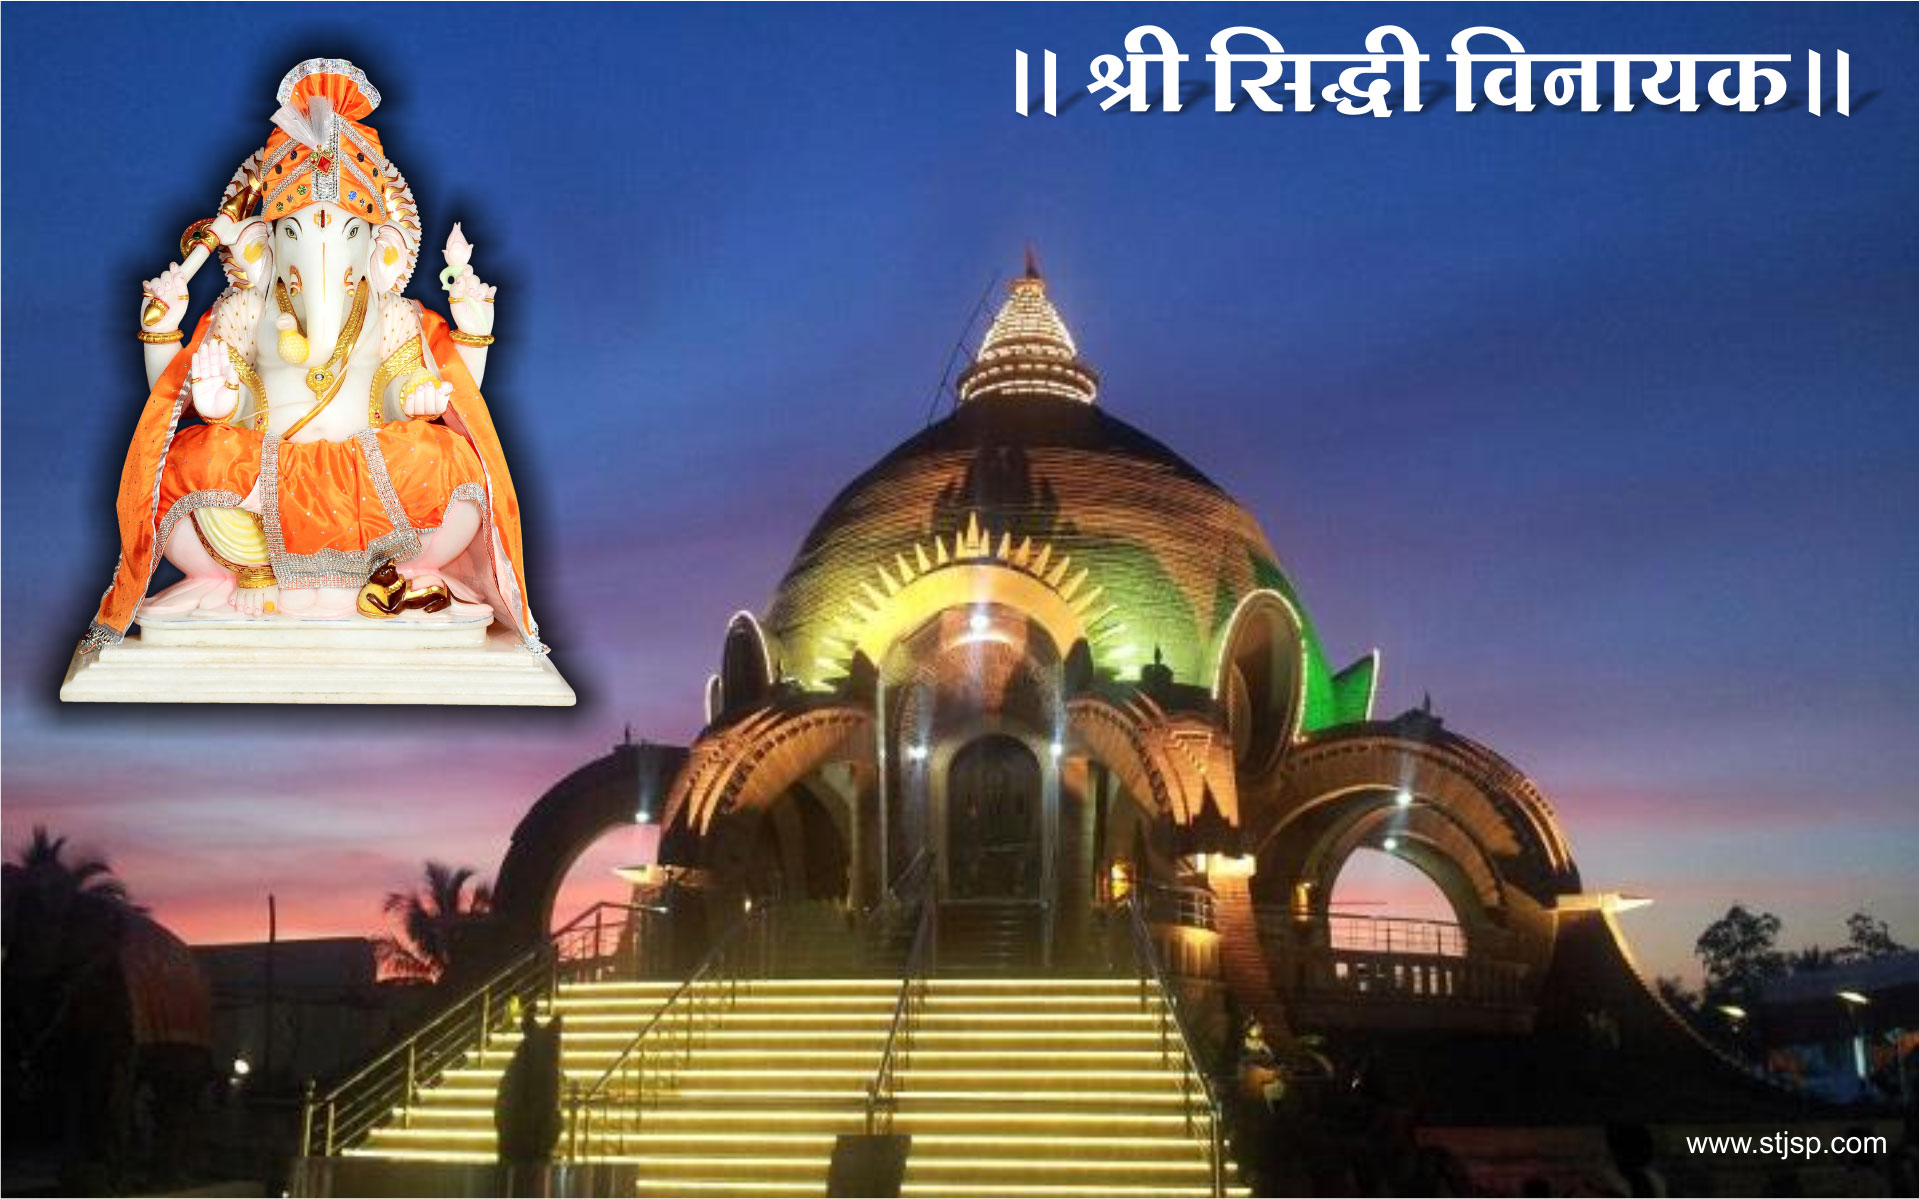 Simple Wallpaper Lord Siddhivinayak - w2  Collection_548517.jpg